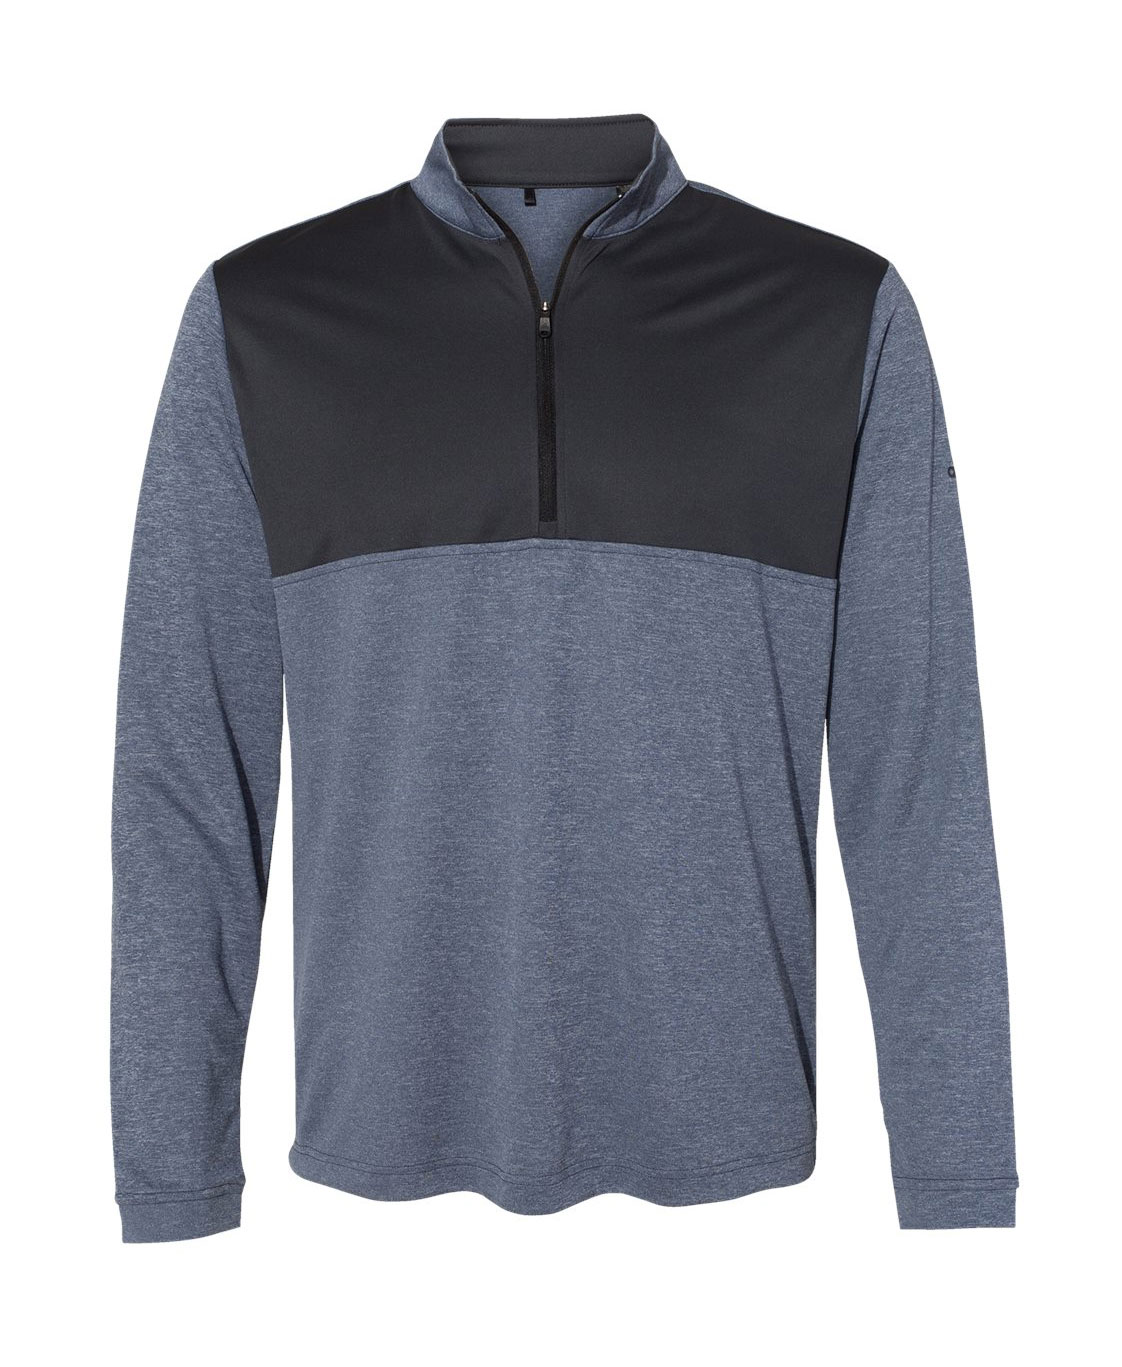 Adidas Mens Lightweight Quarter-Zip Pullover